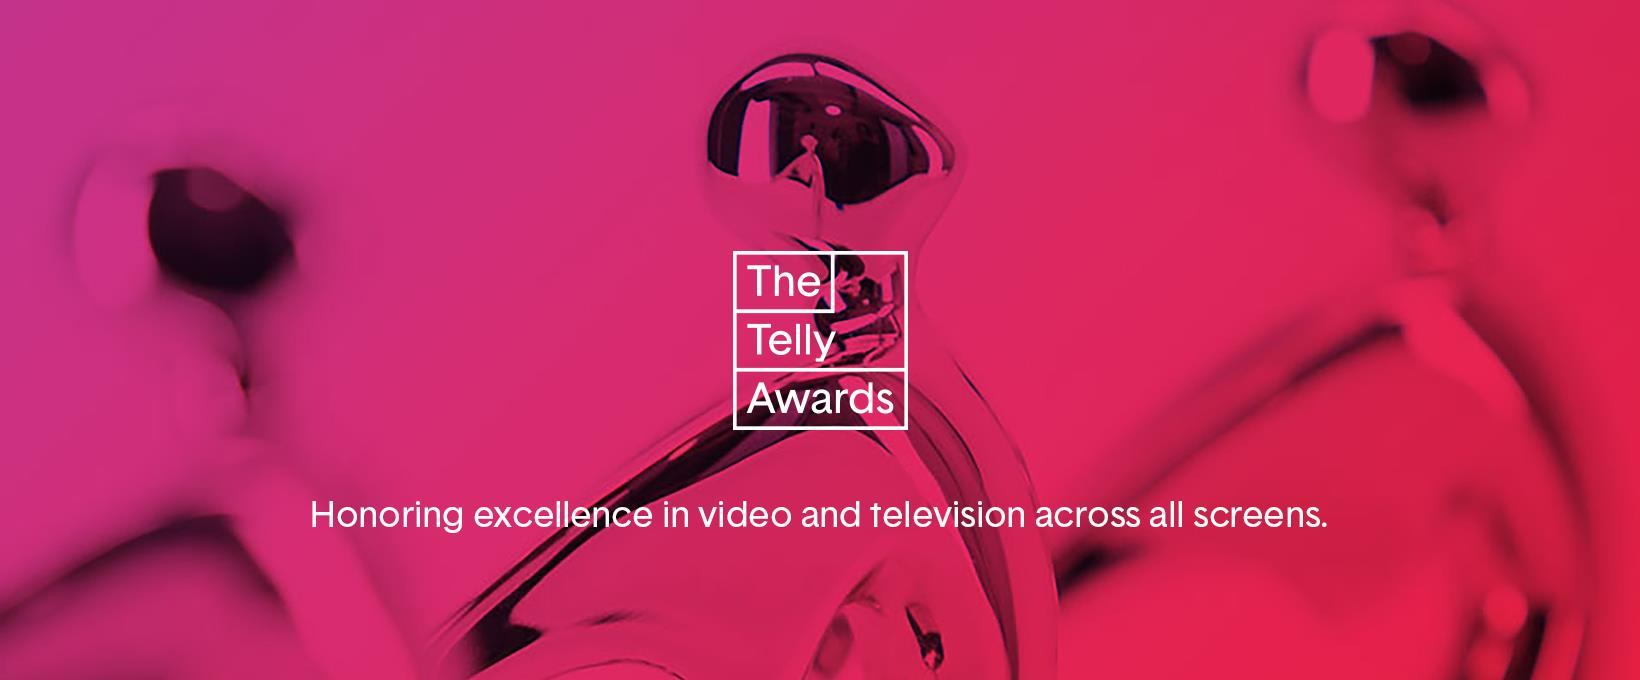 Telly Awards love for our 30-minute film - Yamamoto